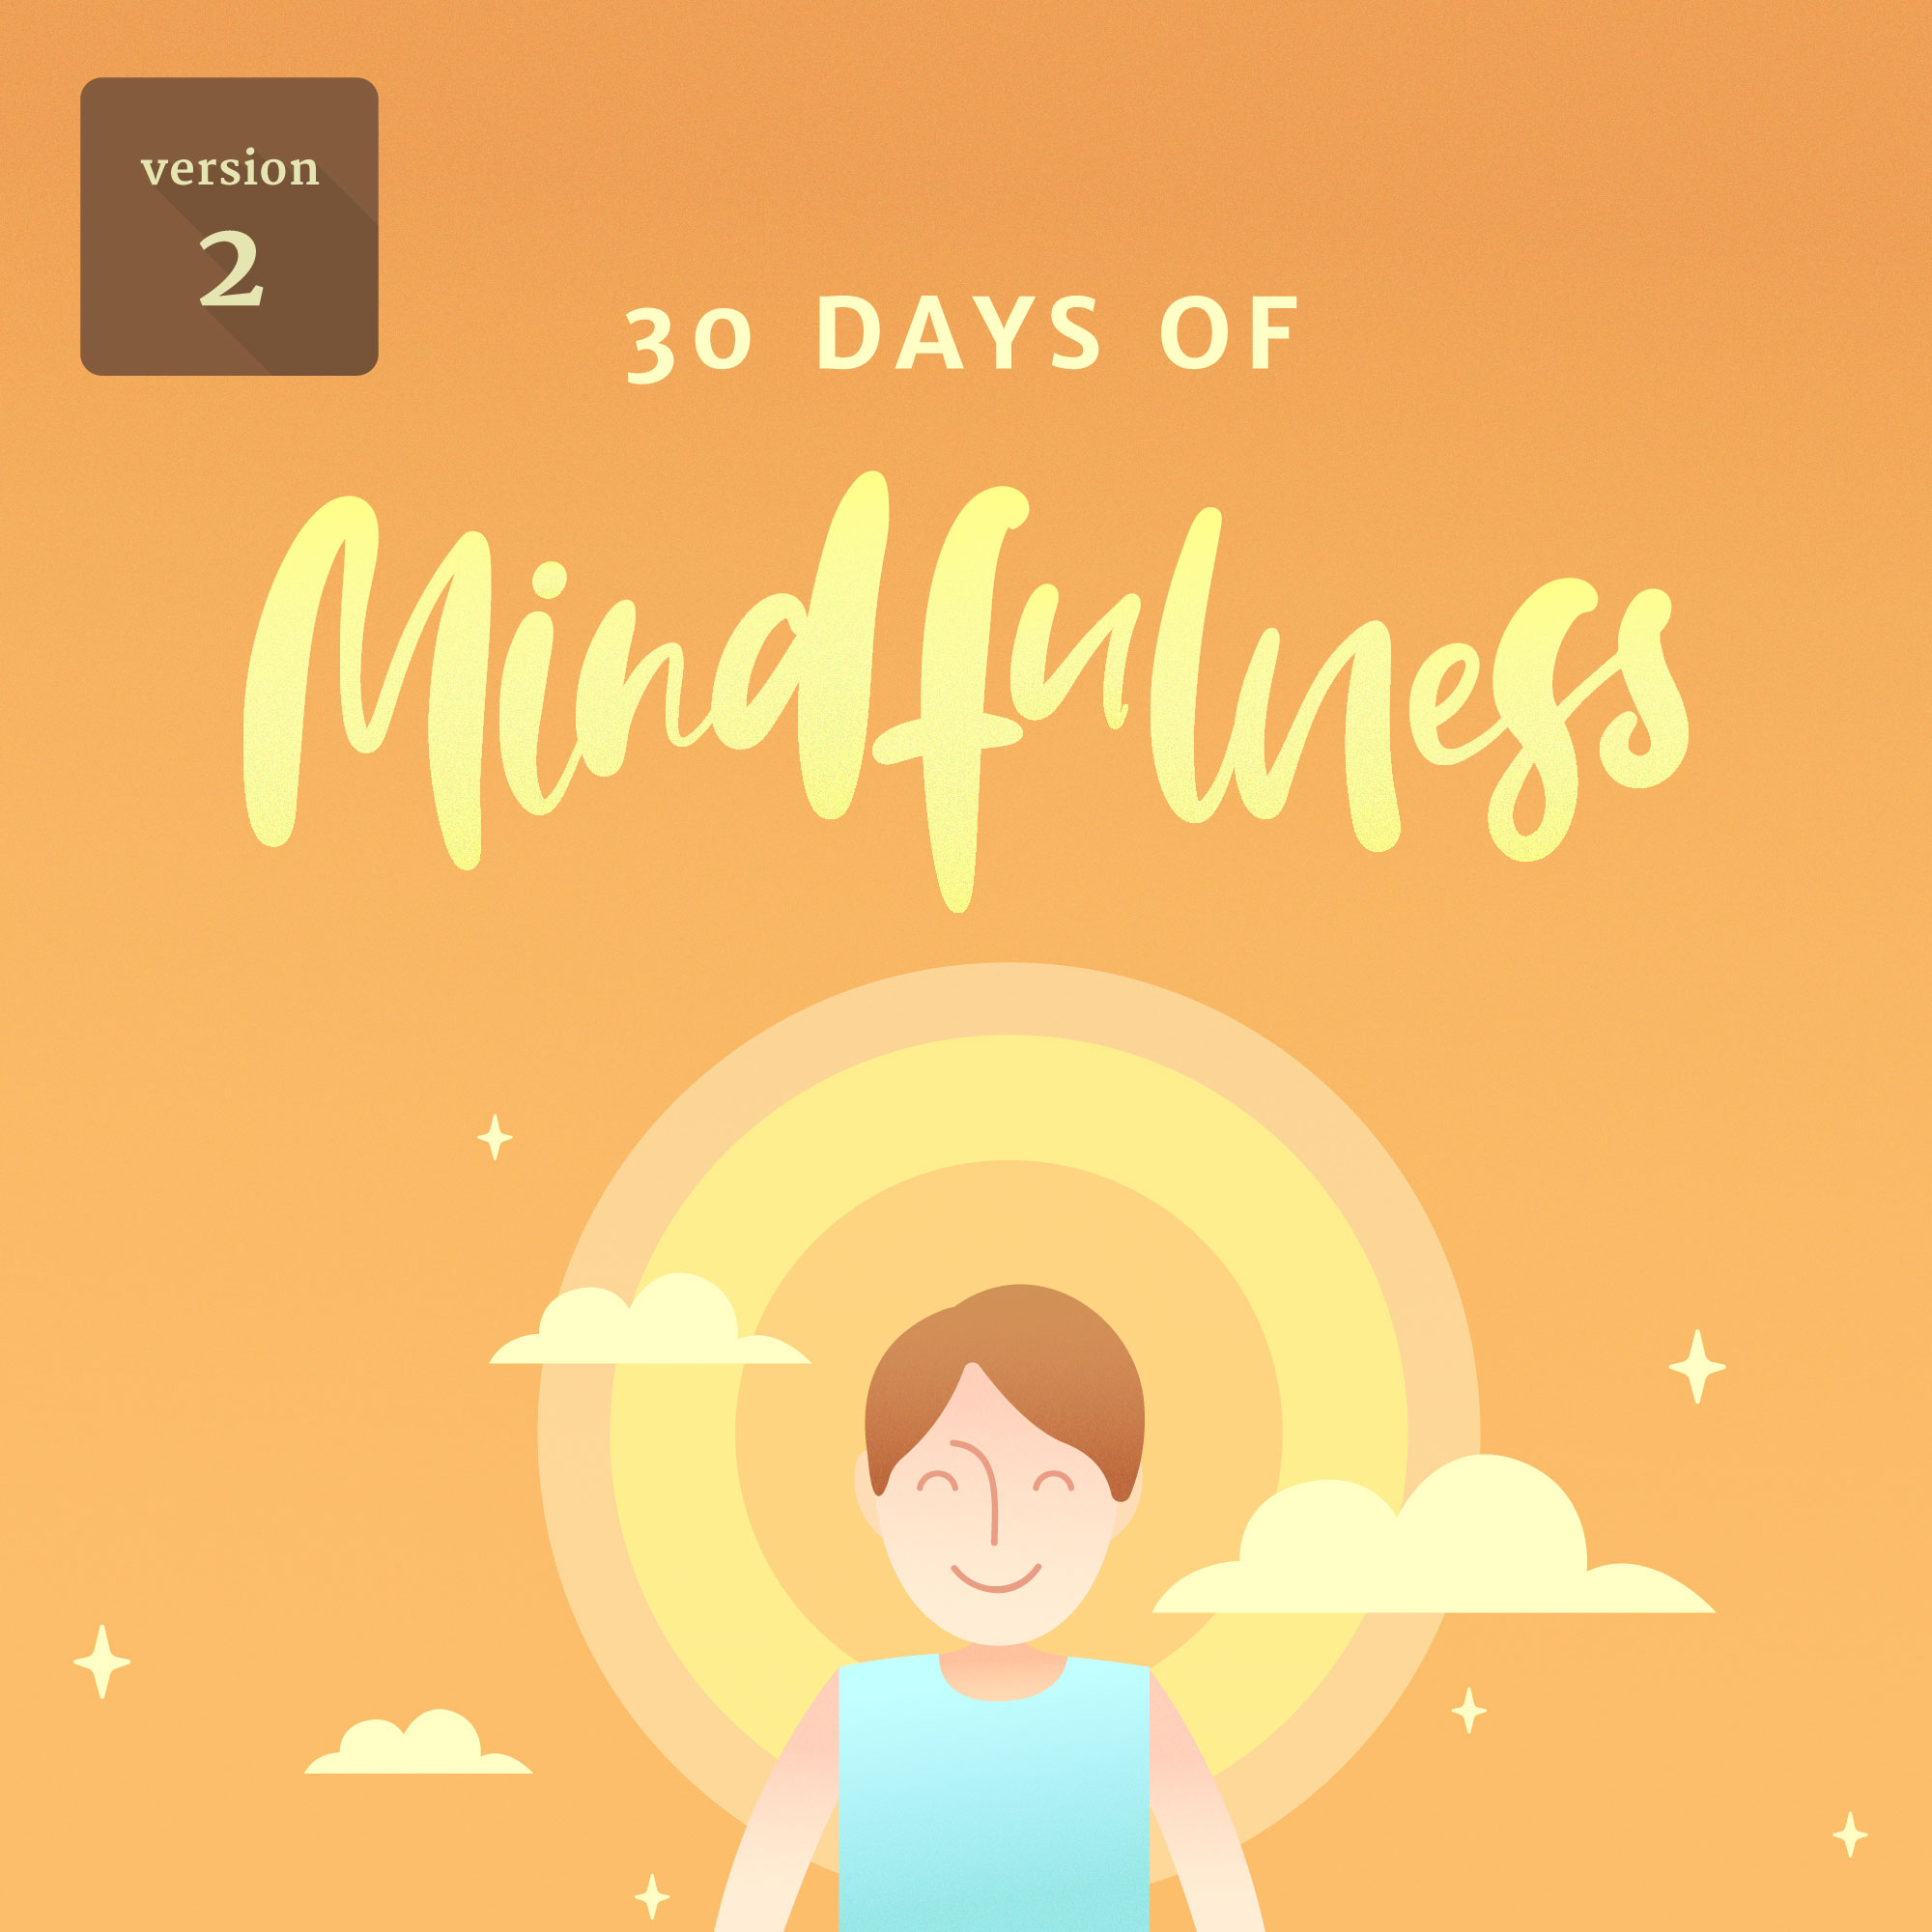 30 Days of Mindfulness